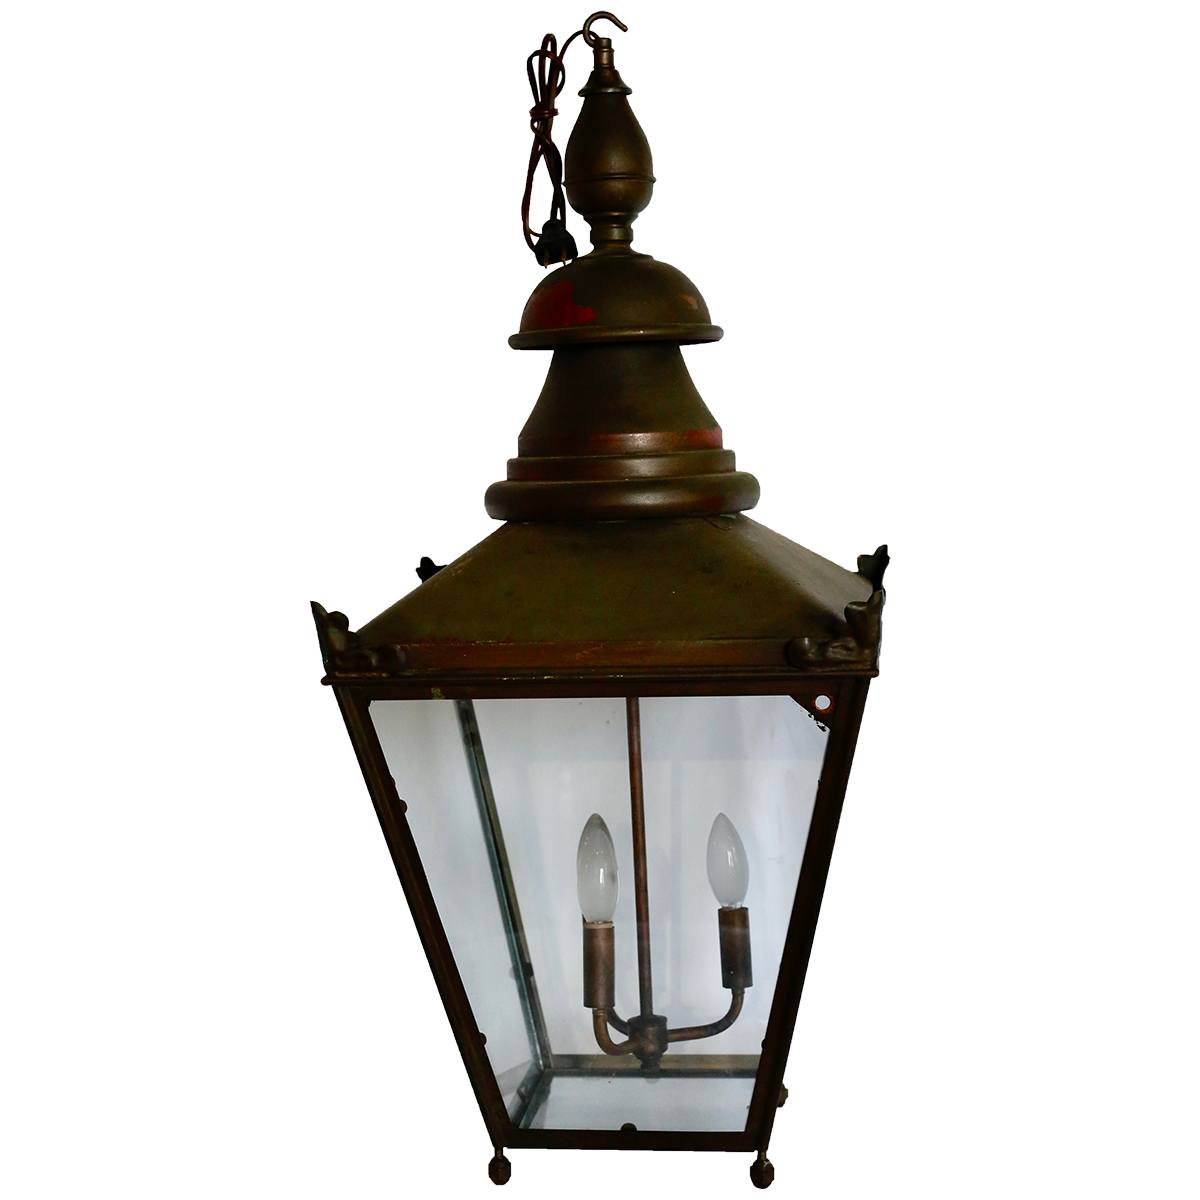 a statue of a lamp